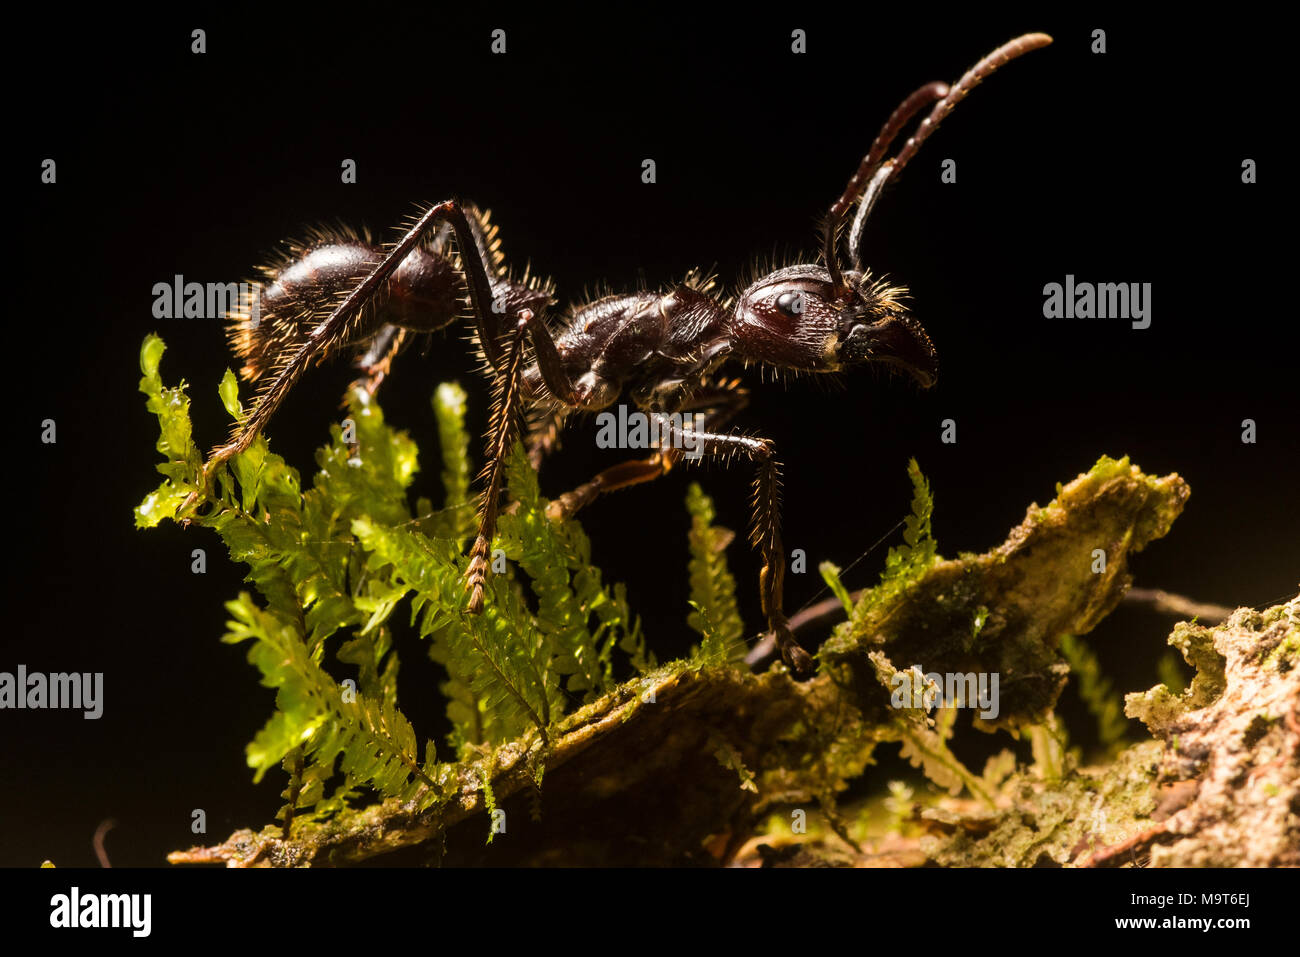 The infamous bullet ant (Paraponera clavata), known for having the most painful sting among insects. Found throughout Central and South America. Stock Photo